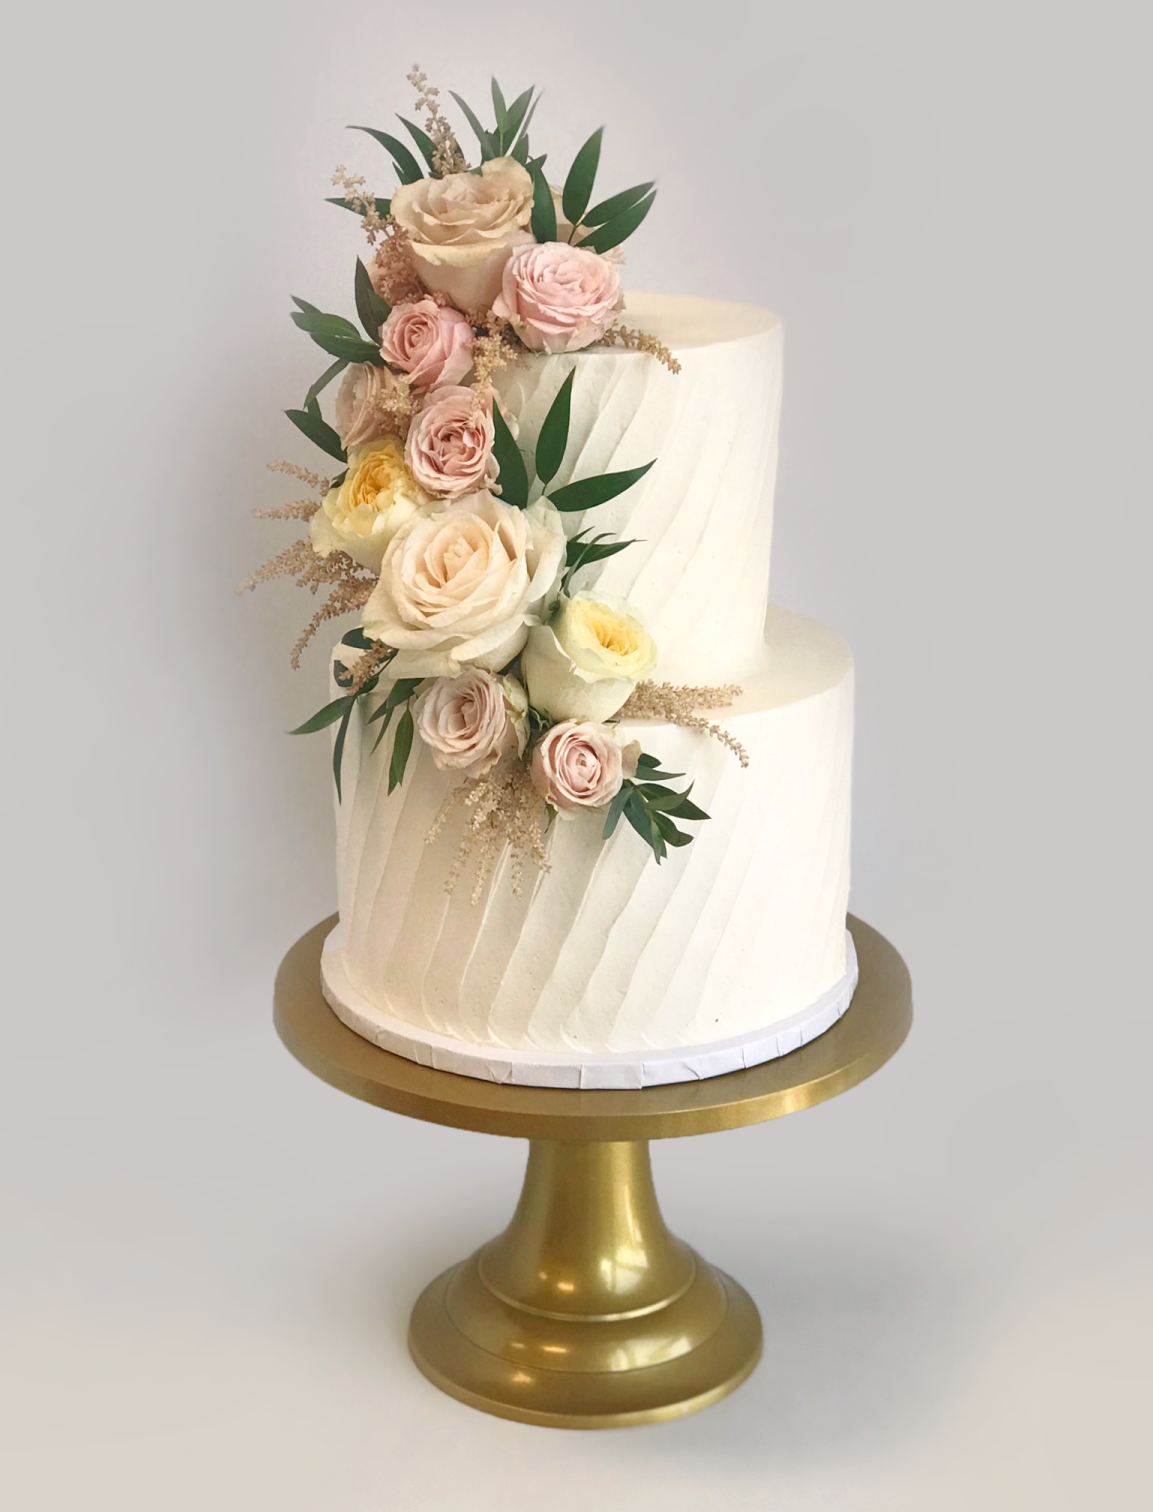 Whippt Desserts - Wedding Cake Calgary Zoo Fleurish July 2019 2